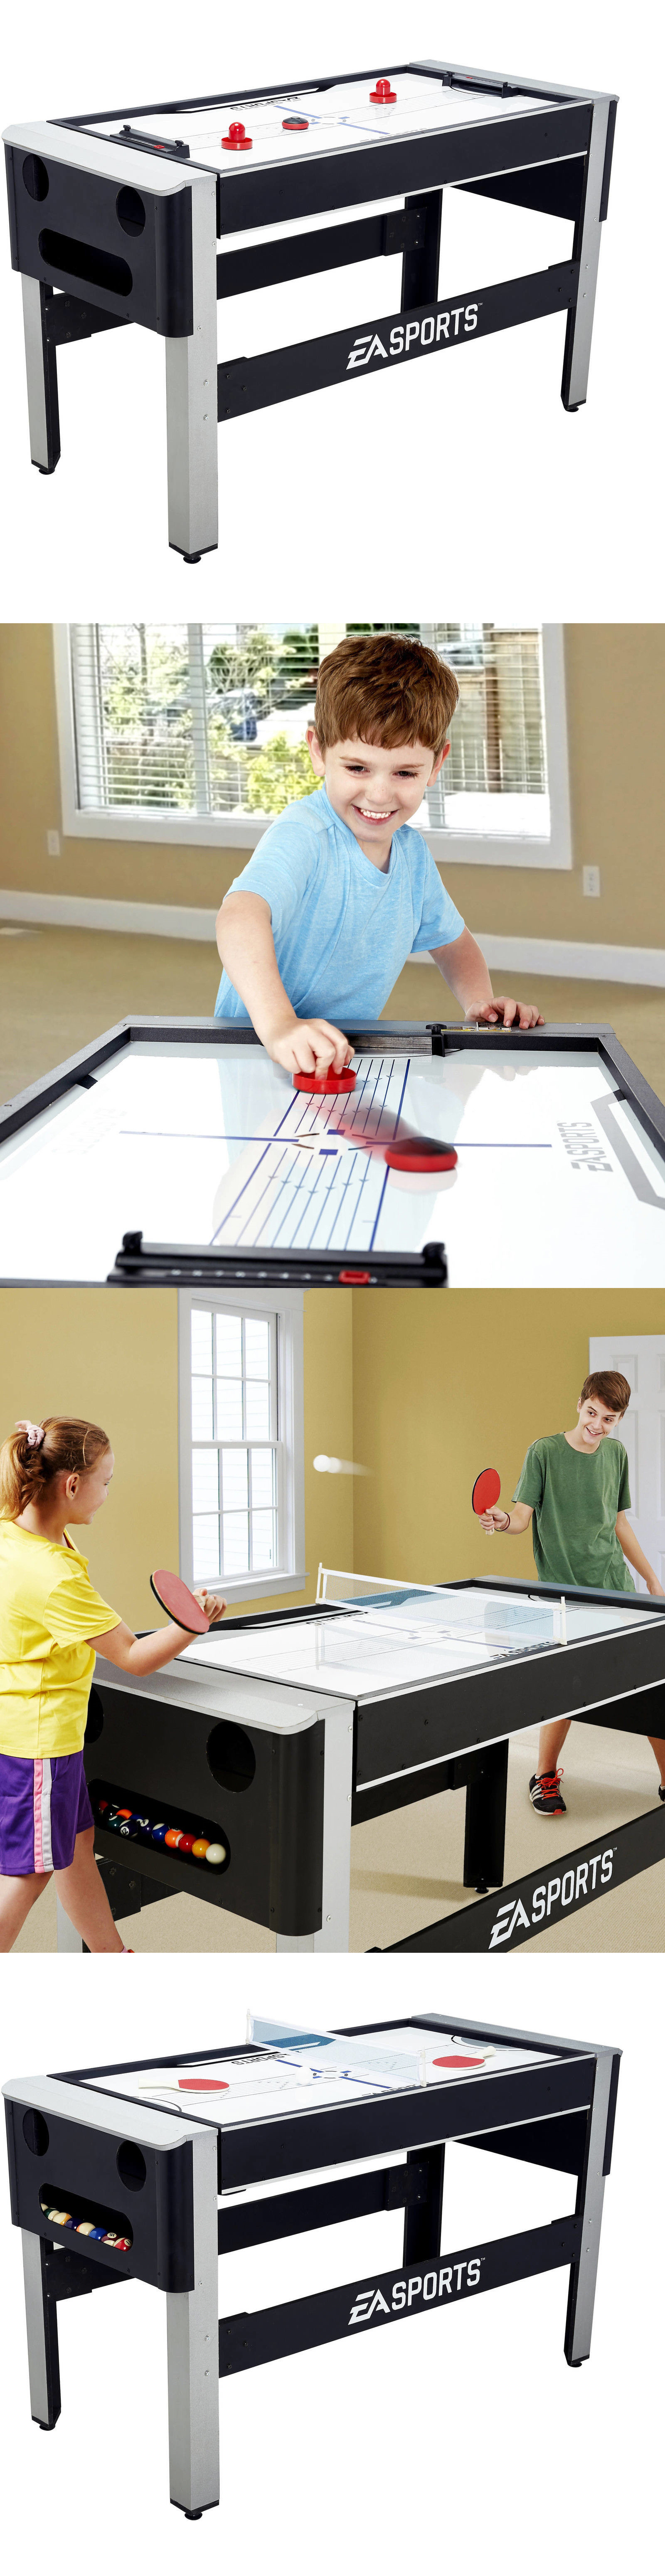 Other Indoor Games 36278: 4 In 1 Swivel Combo Table 4 Games W